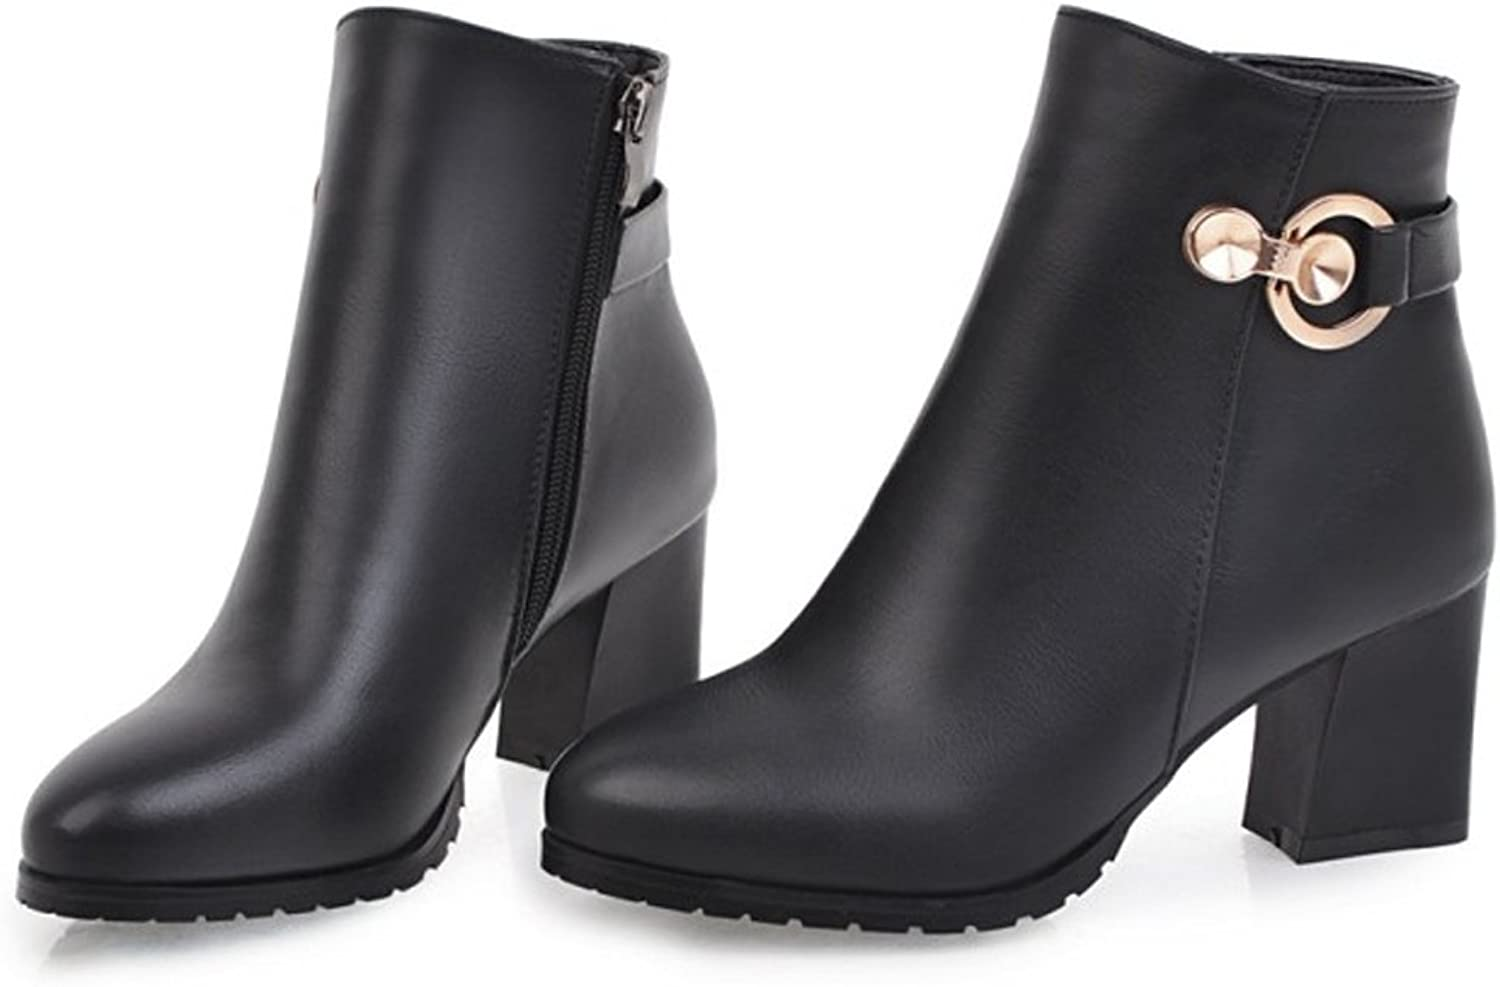 QZUnique Women Square Chunky Heel Ankle Booties with Metal Decoration Side Zip-Up PU Surface Martin Boots